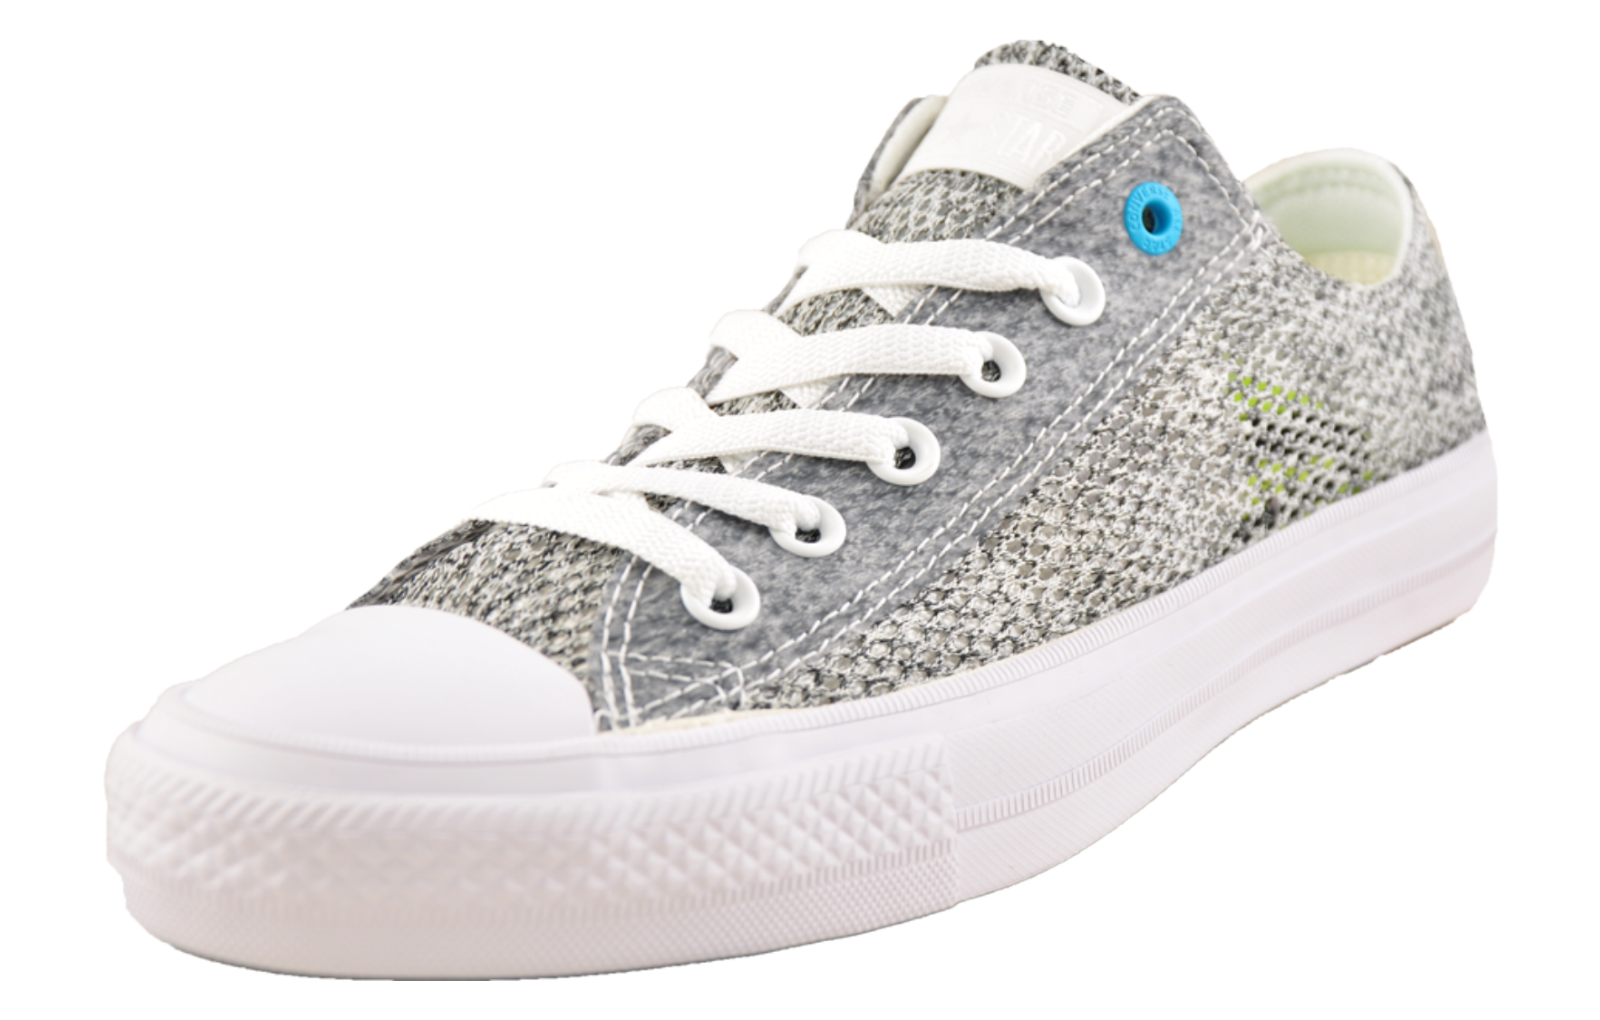 Converse CT All Star II Ox Lo Uni - CN183822